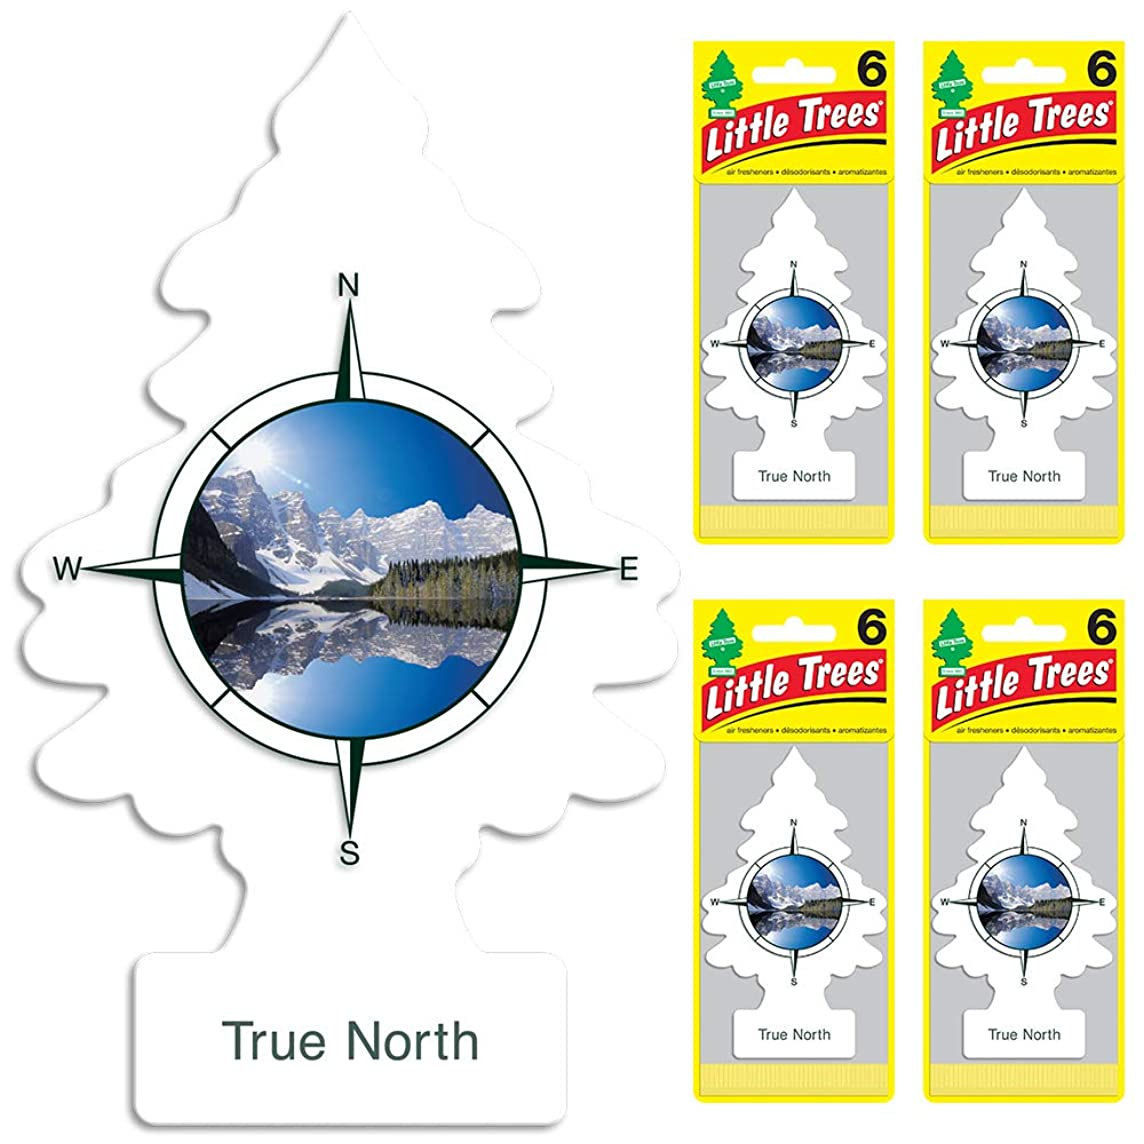 LITTLE TREES auto air freshener, True North, 6-packs (4 count)